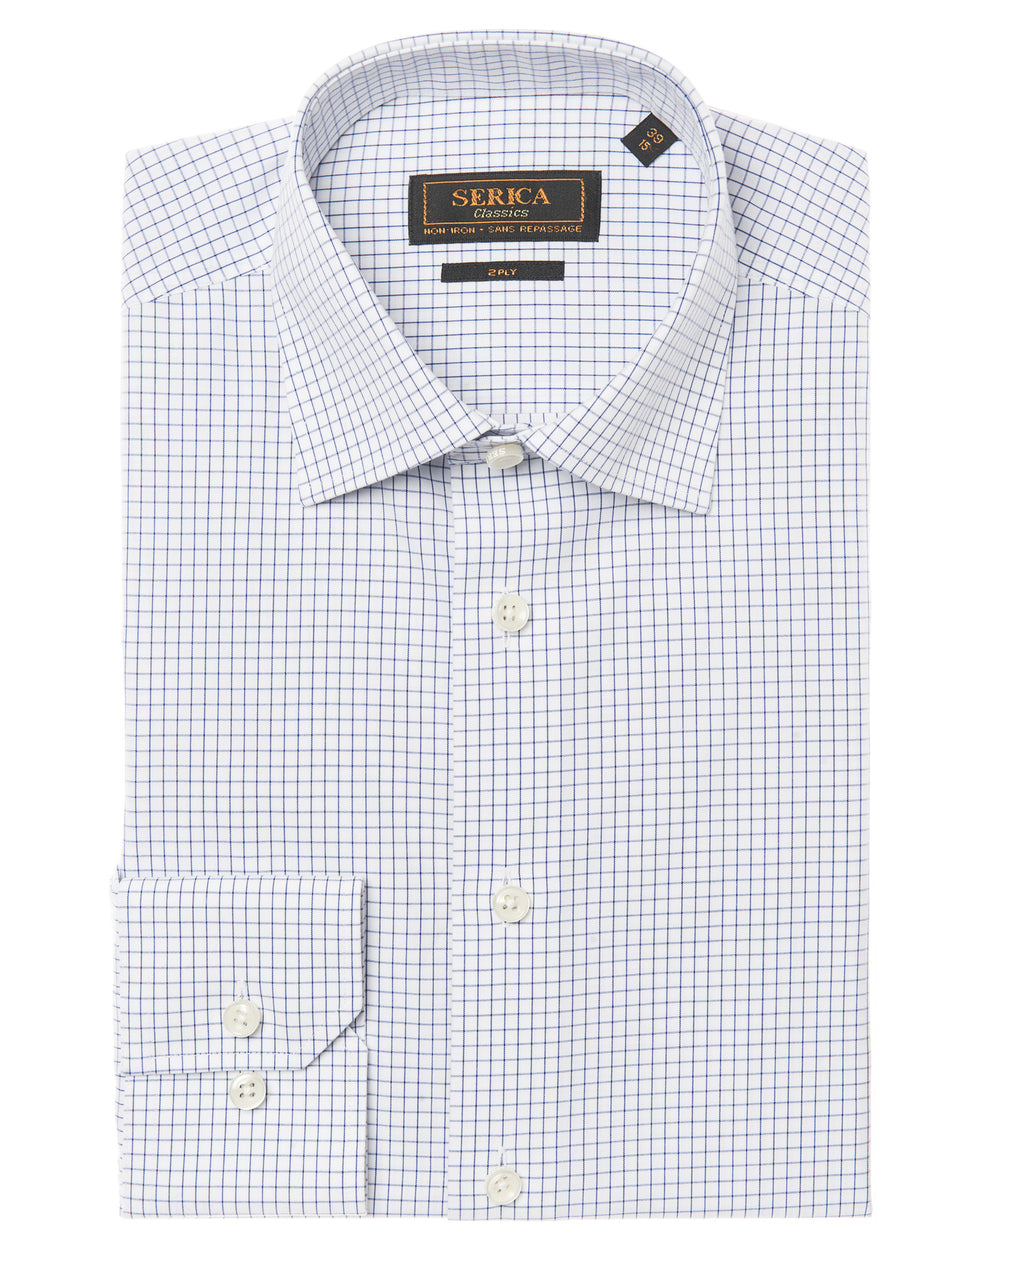 Dress shirt with navy check pattern